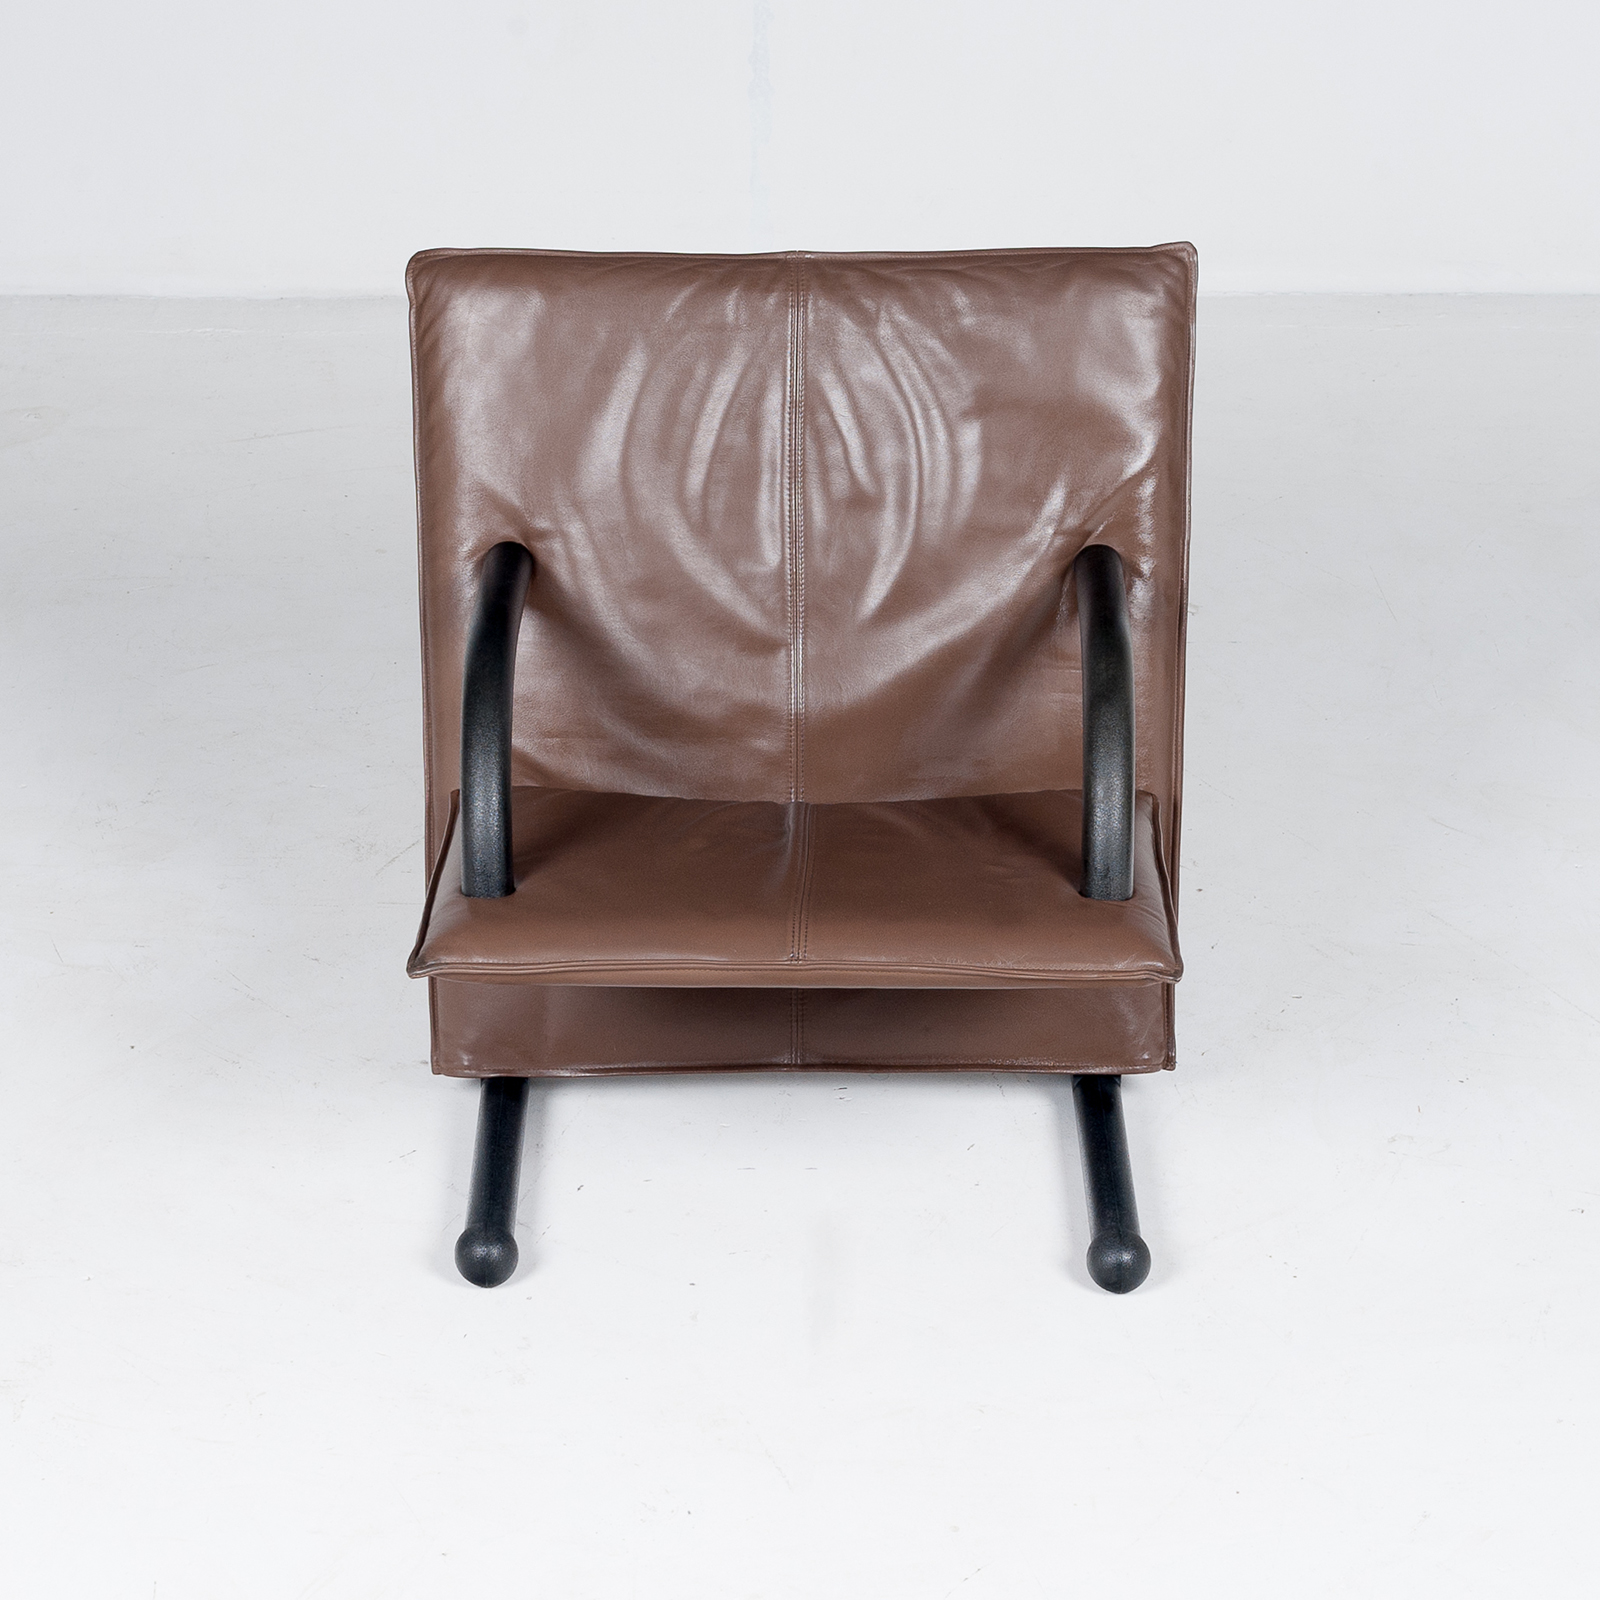 Model T Line Chair In By Burkhard Vogtherr For Arflex In Brown Leather, 1980s, Italy66